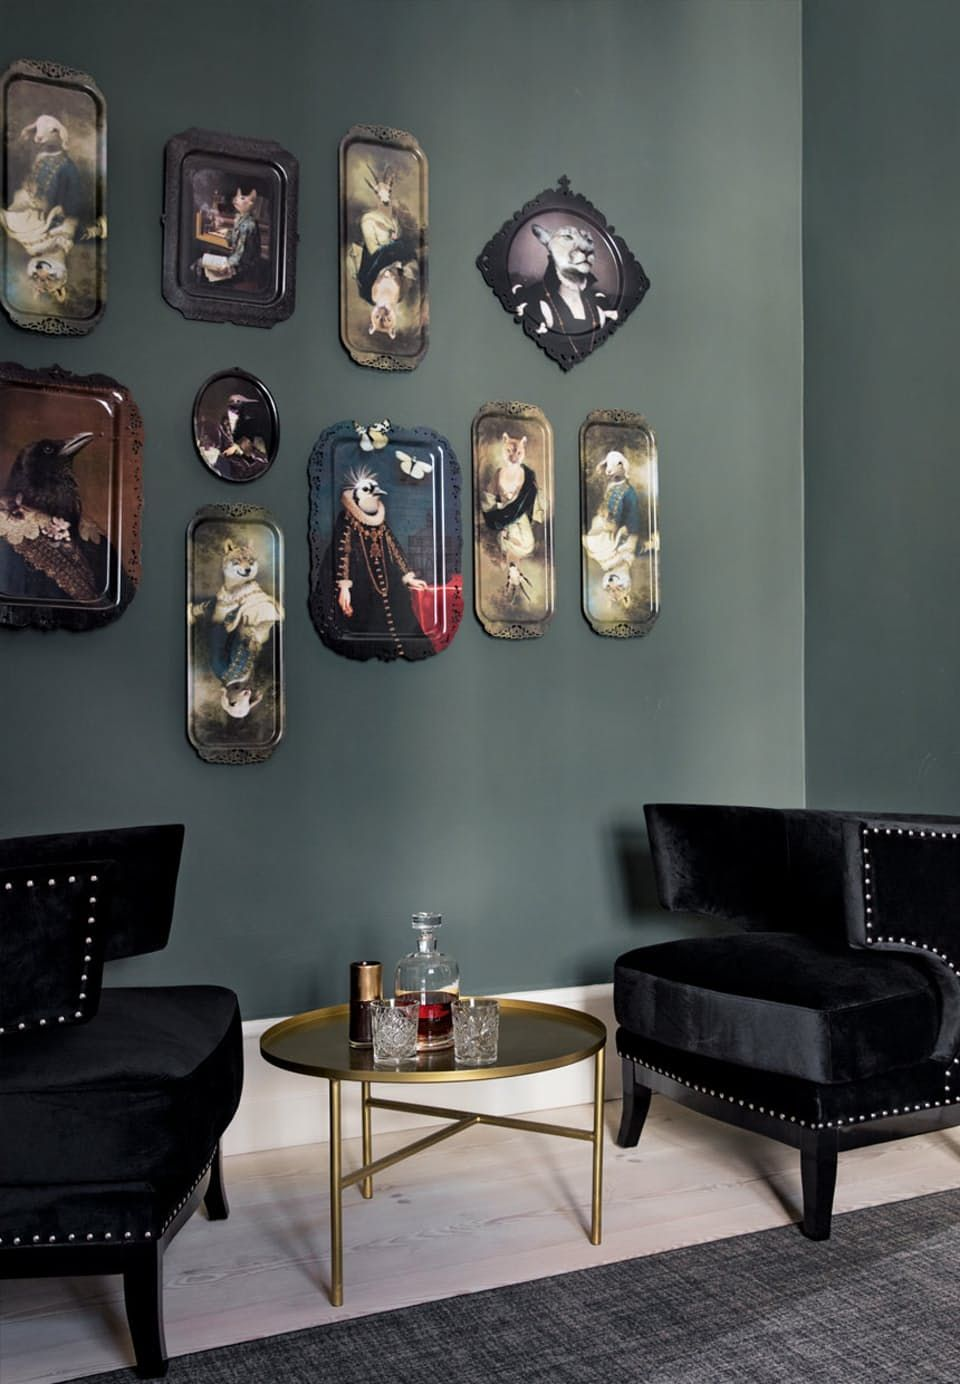 Original wall decoration with beautiful trays is a tribute to the Danish plate tradition. The trays, created by French Ibride, are full of black humor.